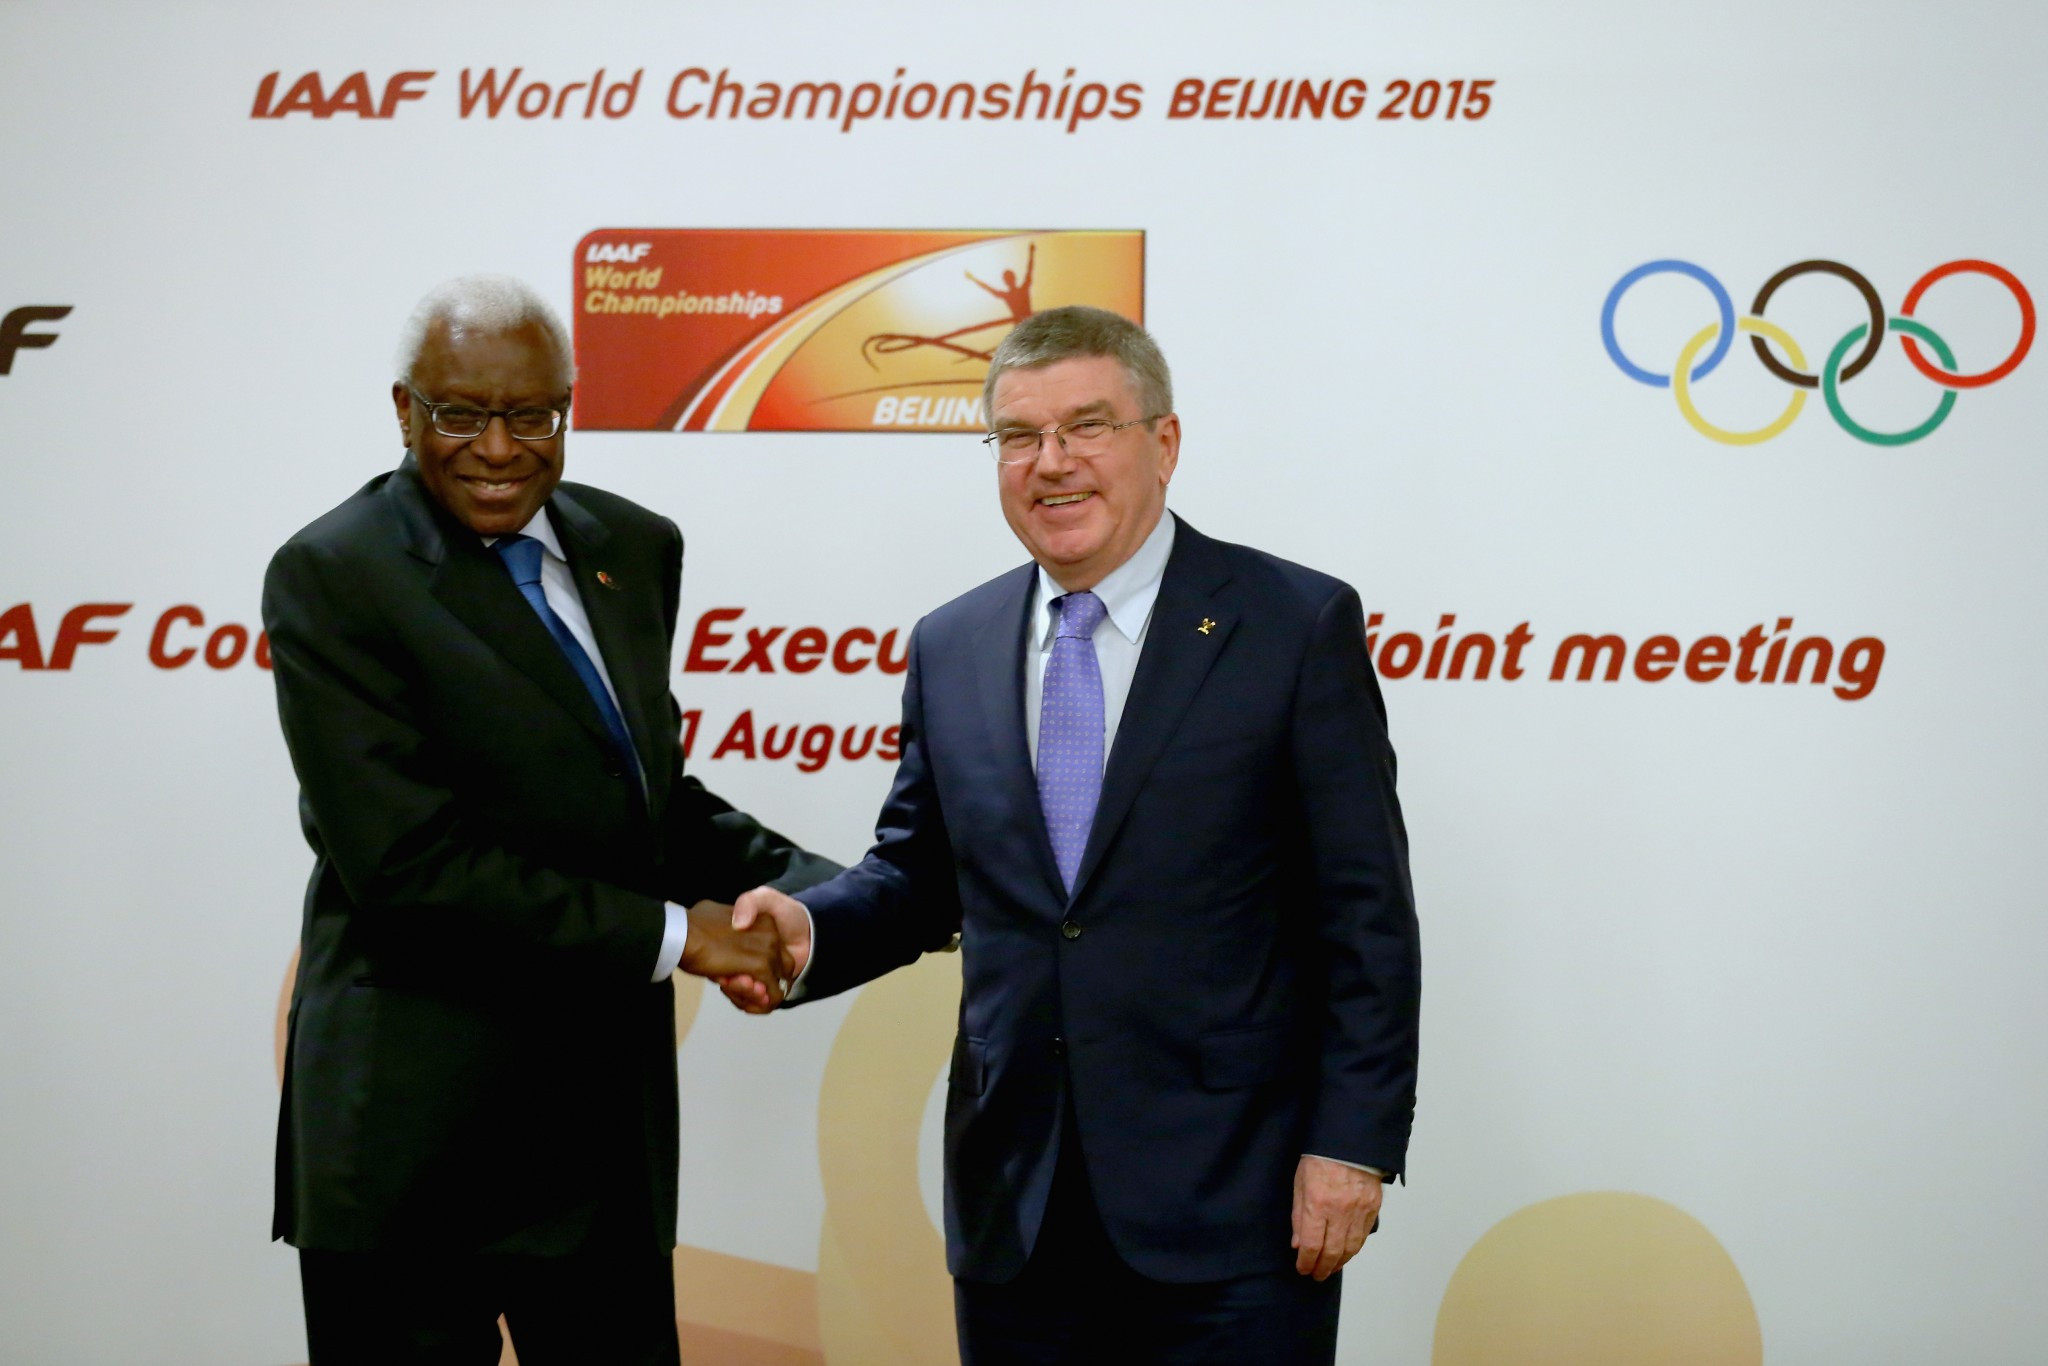 Sebastian Coe's predecessor Lamine Diack, left, became an IOC member soon after his election ©Getty Images